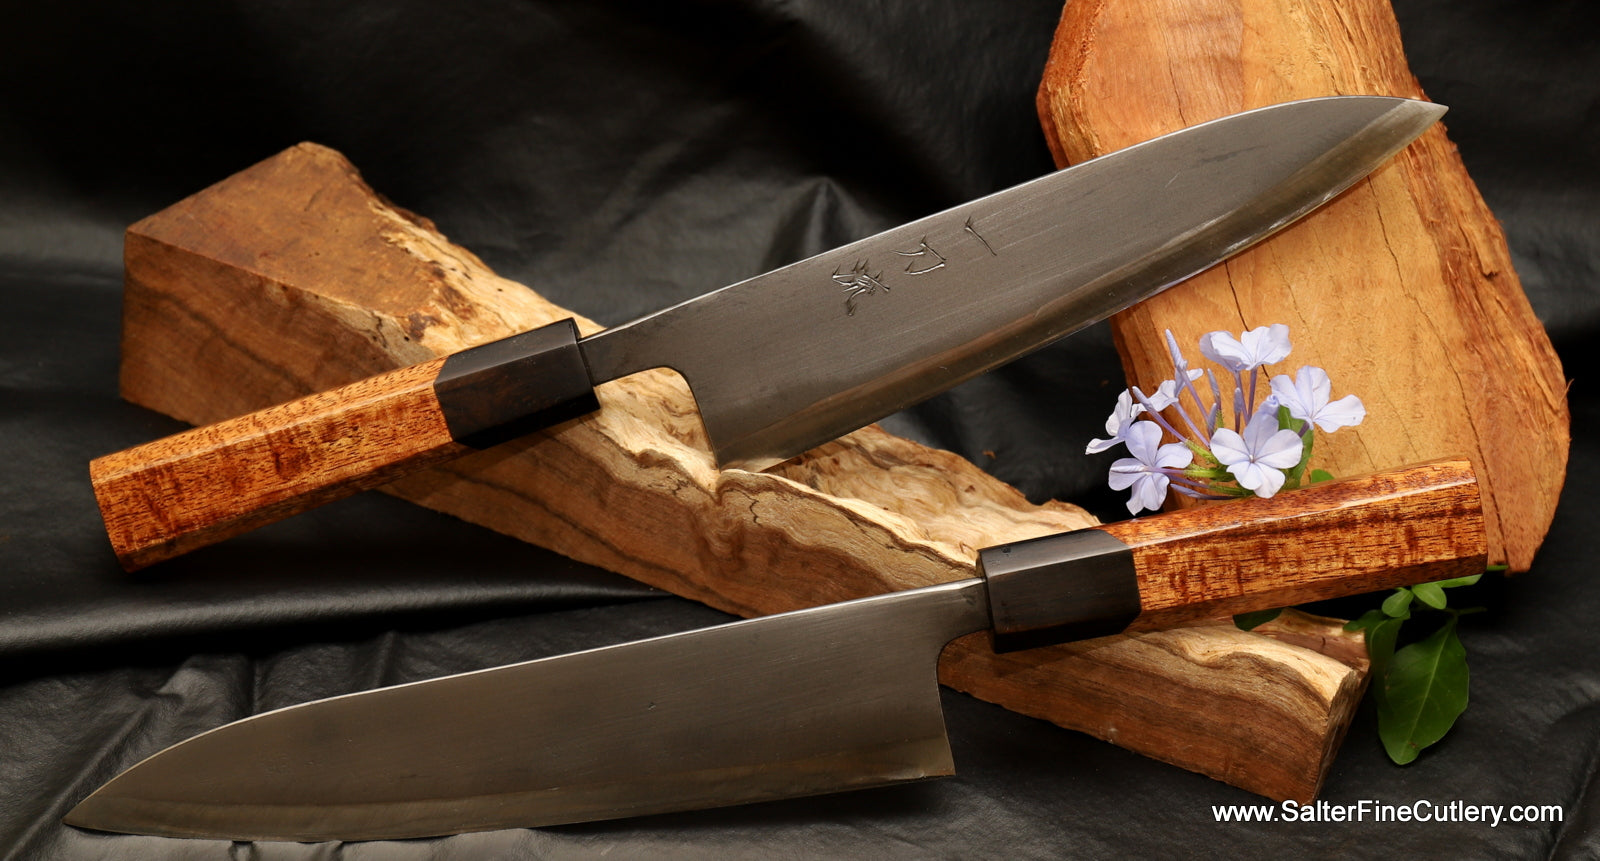 In Stock Item: 210mm Gyuto with Black Matte Blade